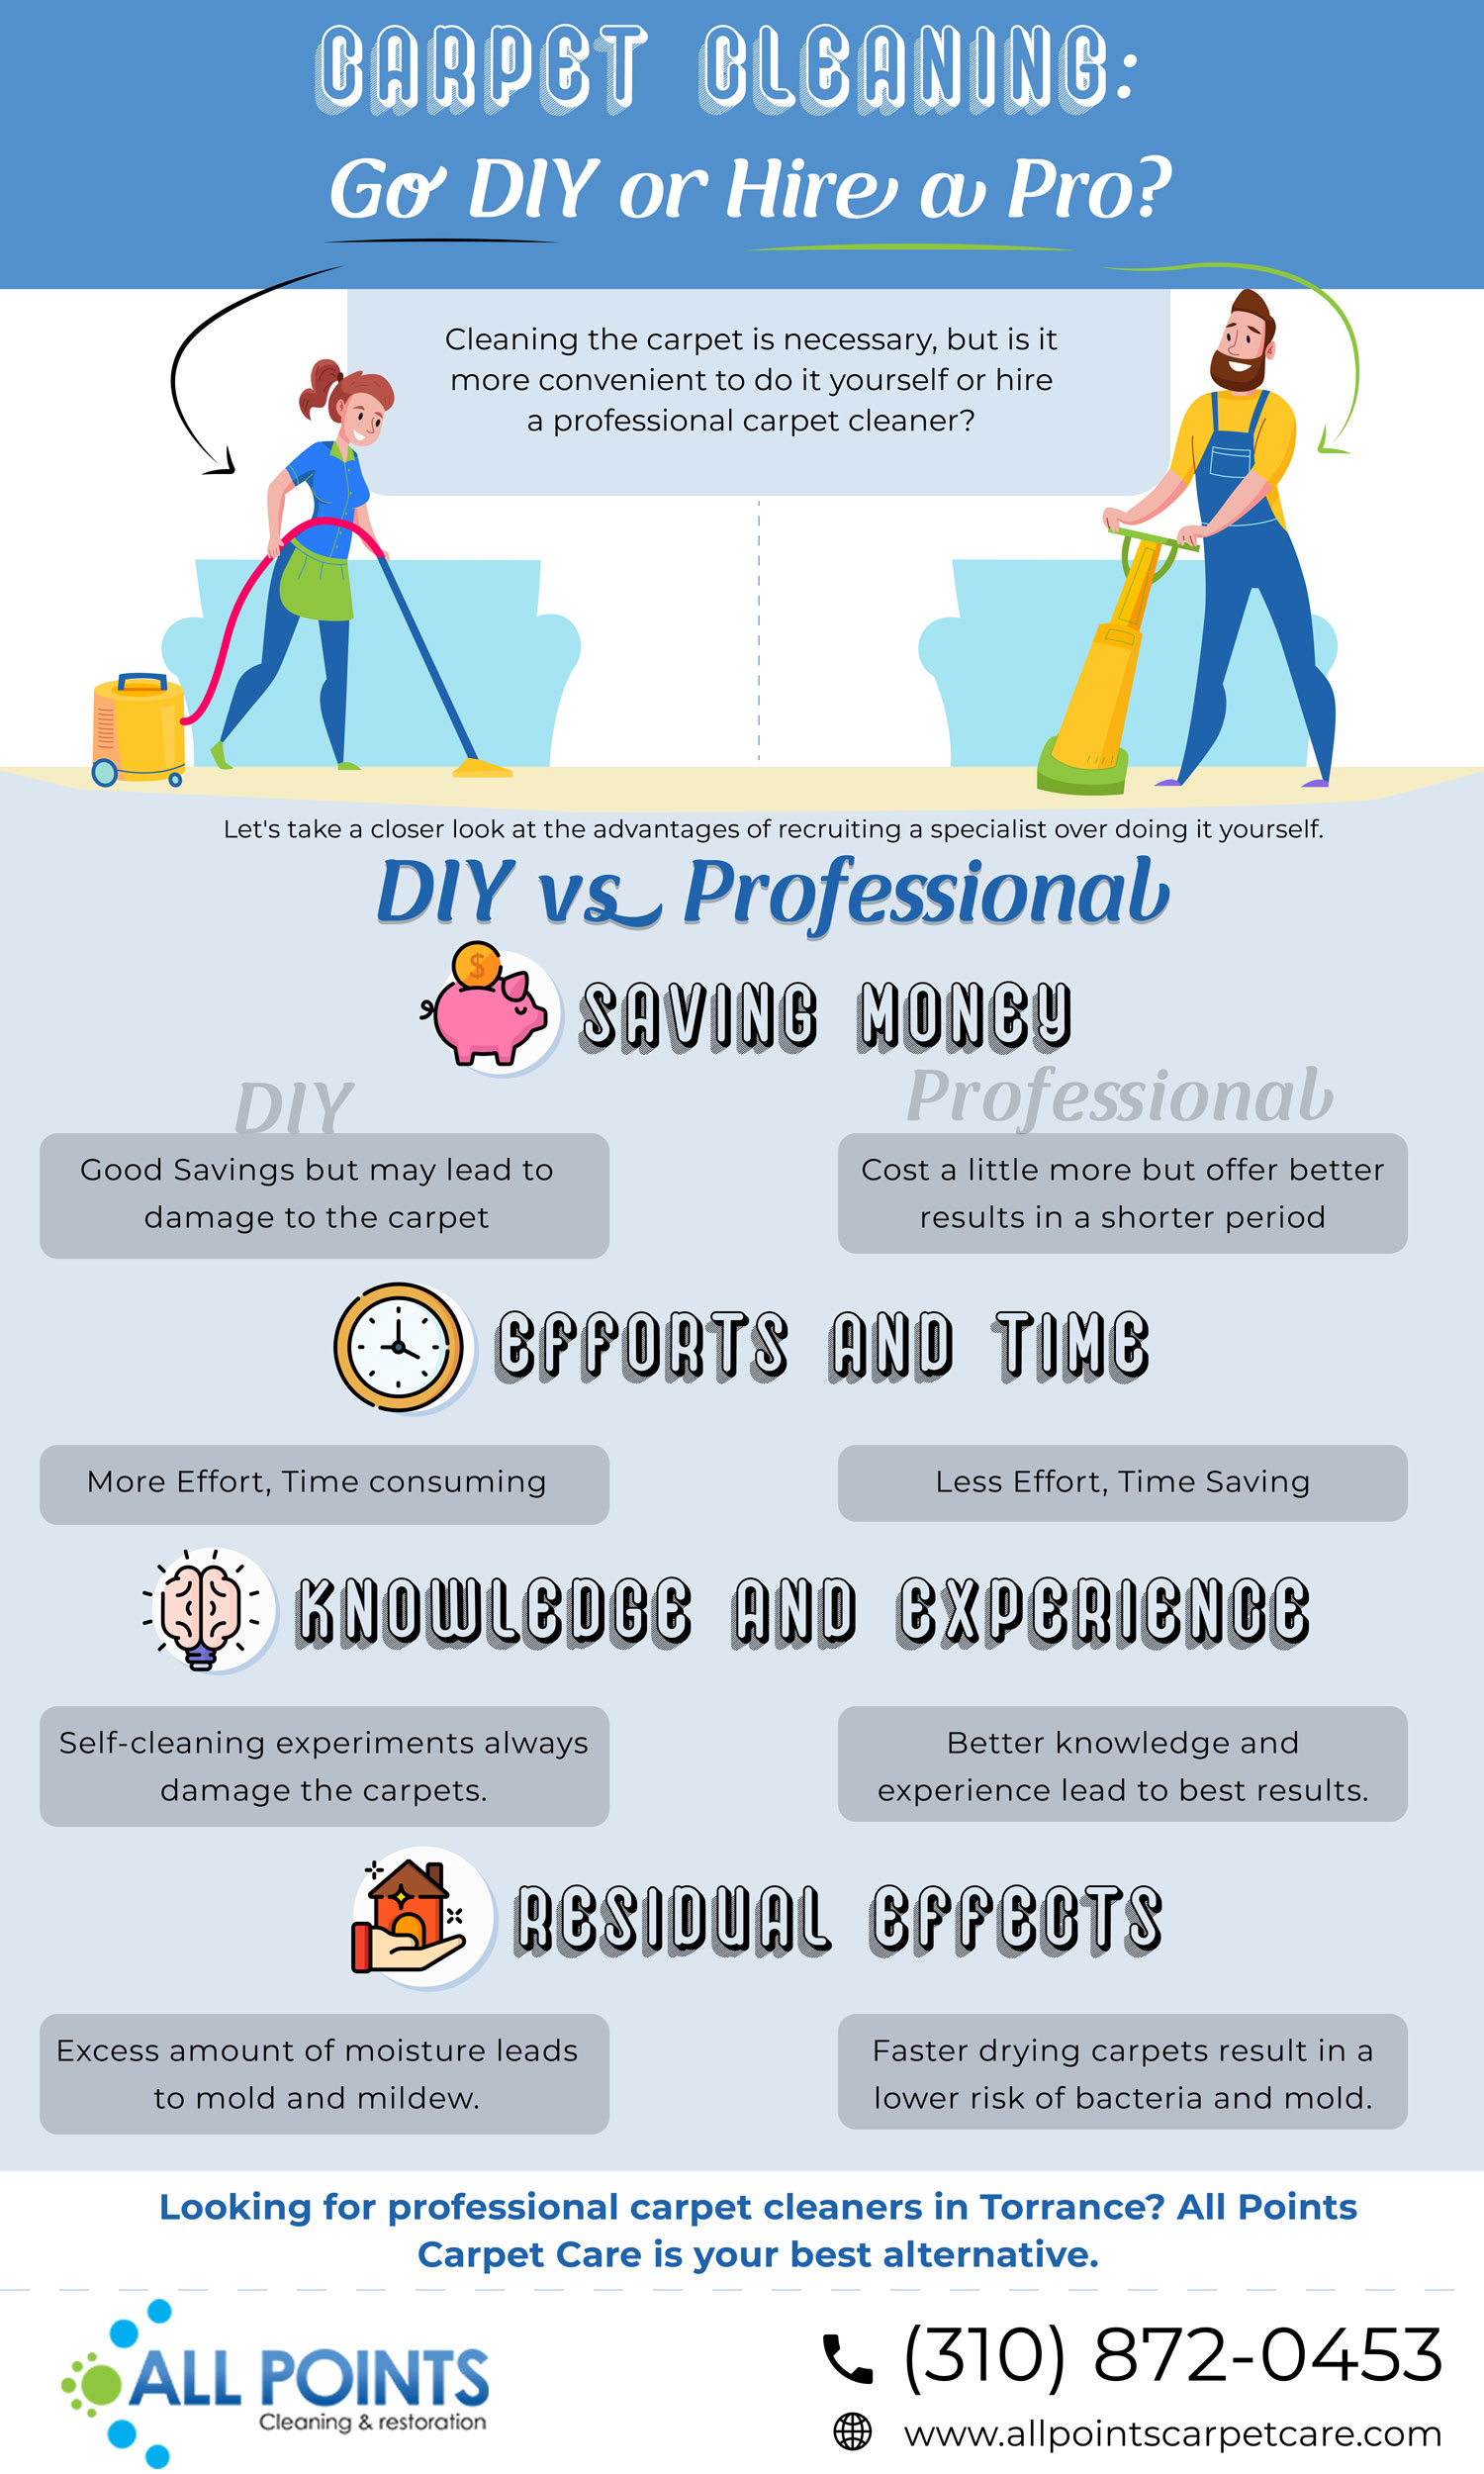 Carpet Cleaning: Go DIY or Hire a Pro?